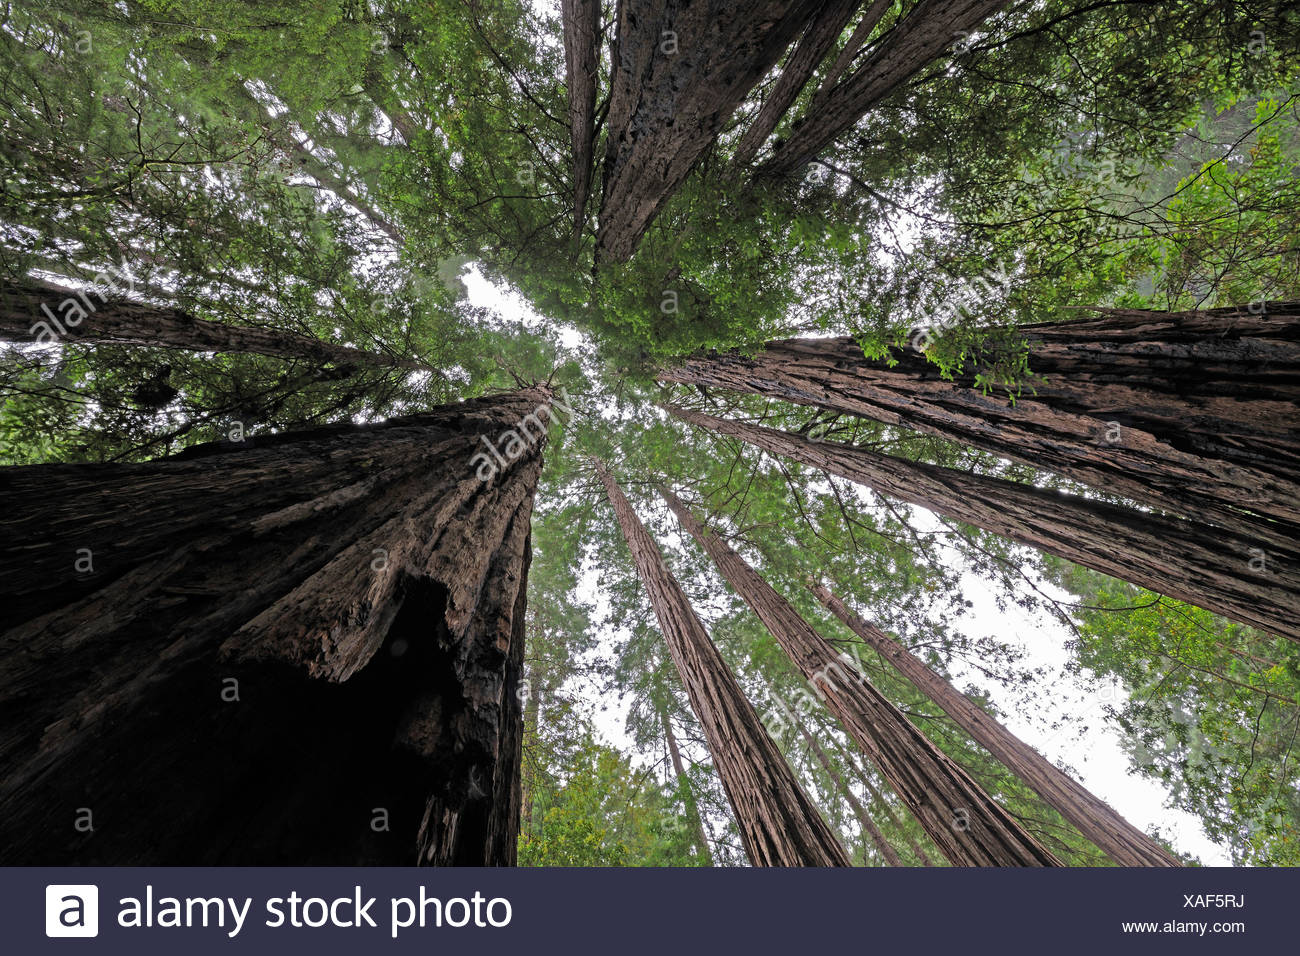 Vegetation and Coastal Redwoods (Sequoia sempervirens), Muir Woods National Park, California, USA, North America - Stock Image